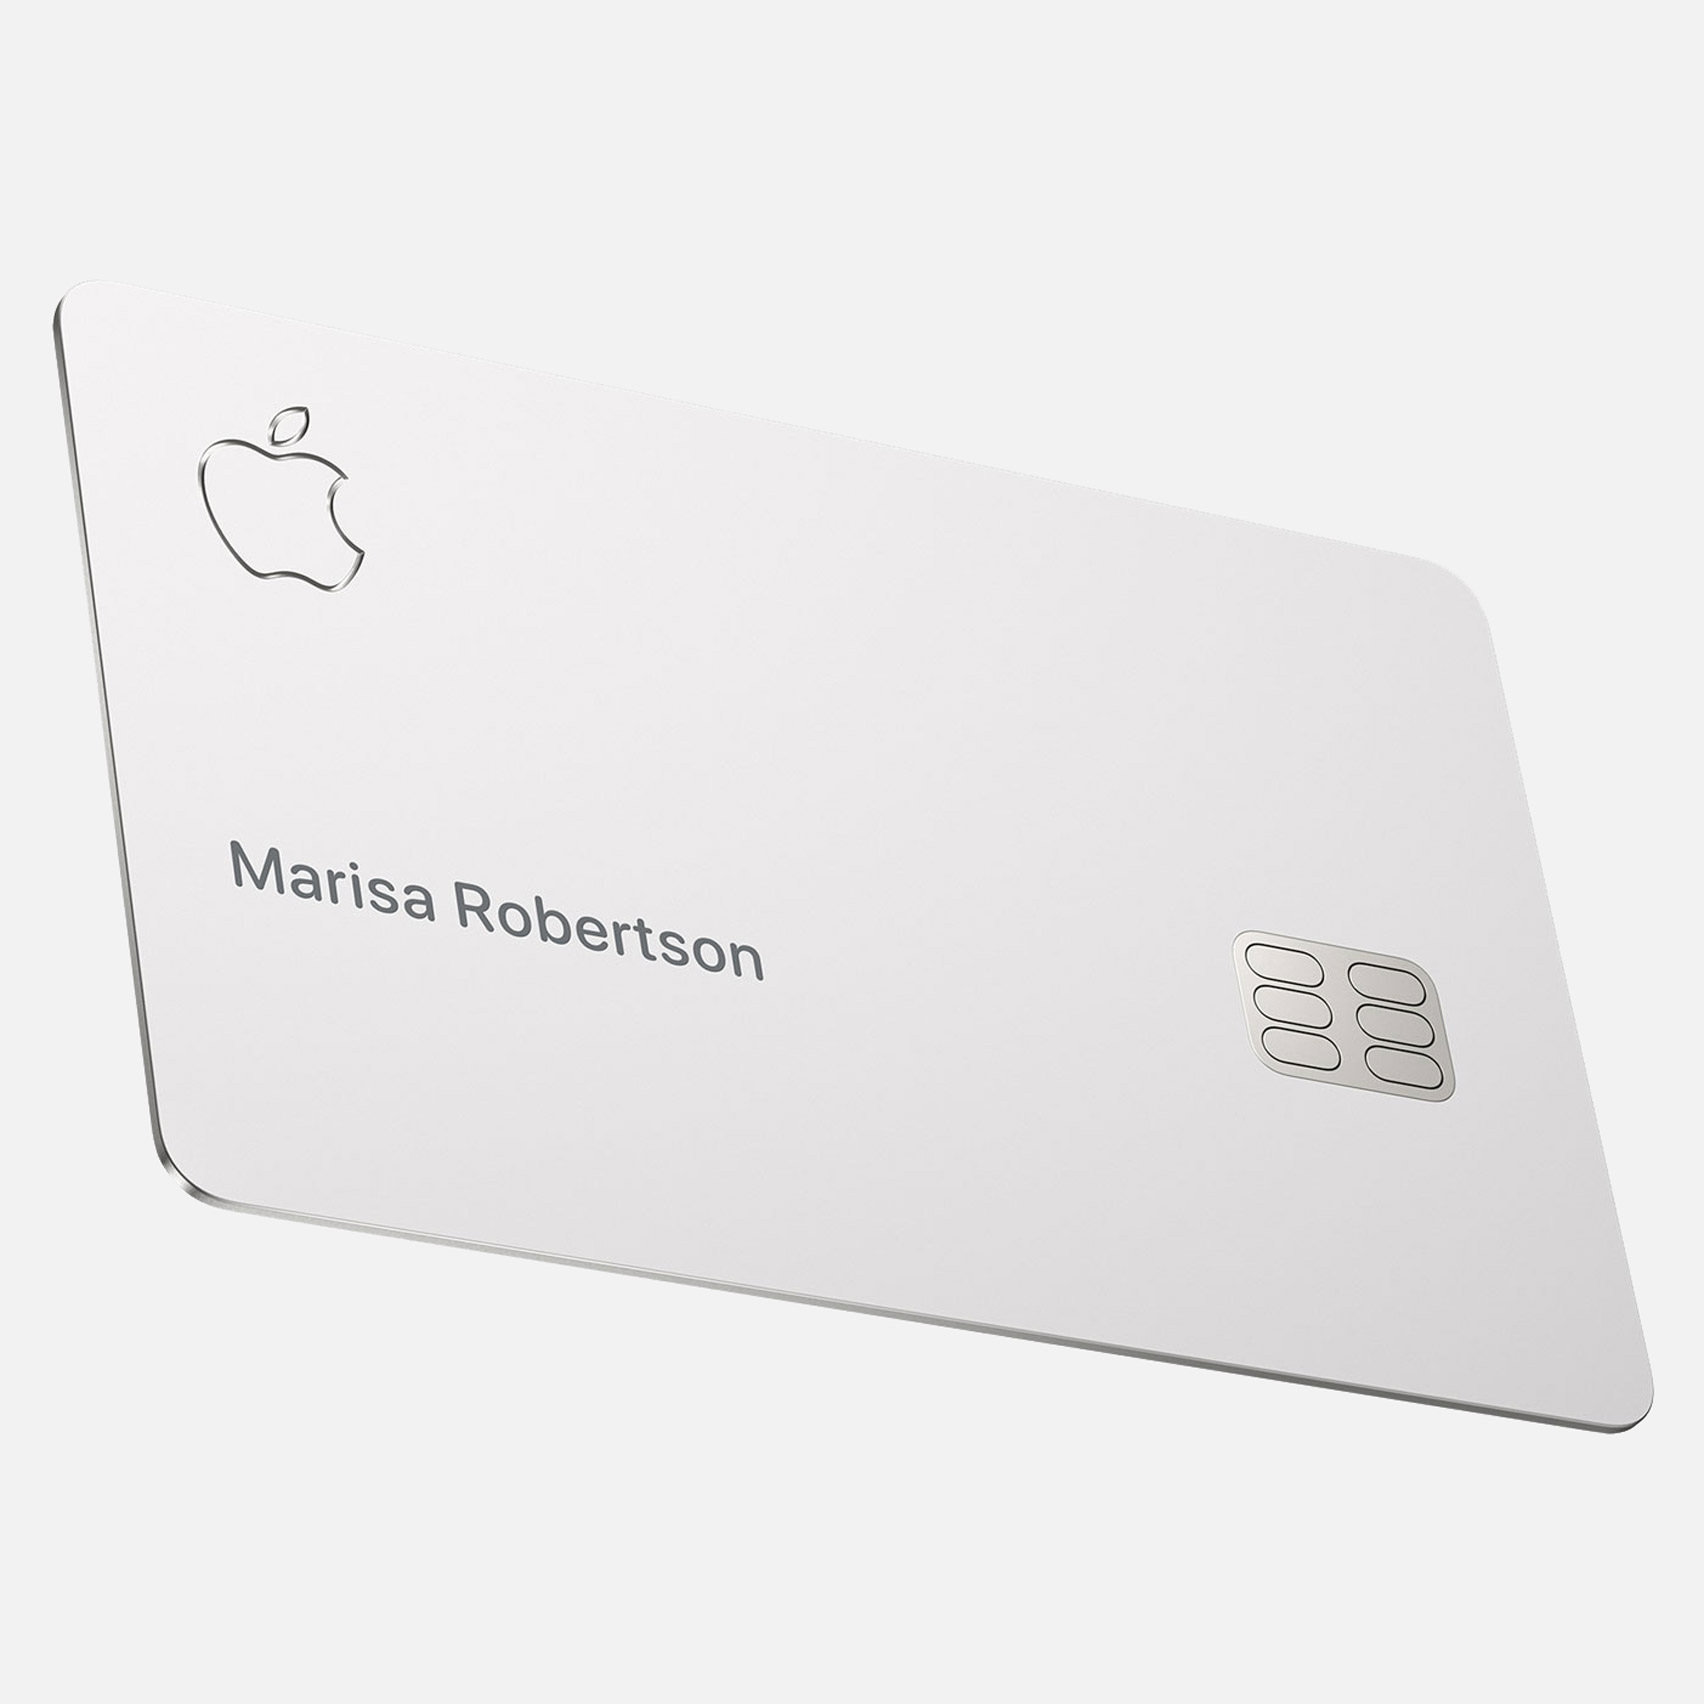 Apple credit card launches touting privacy and security